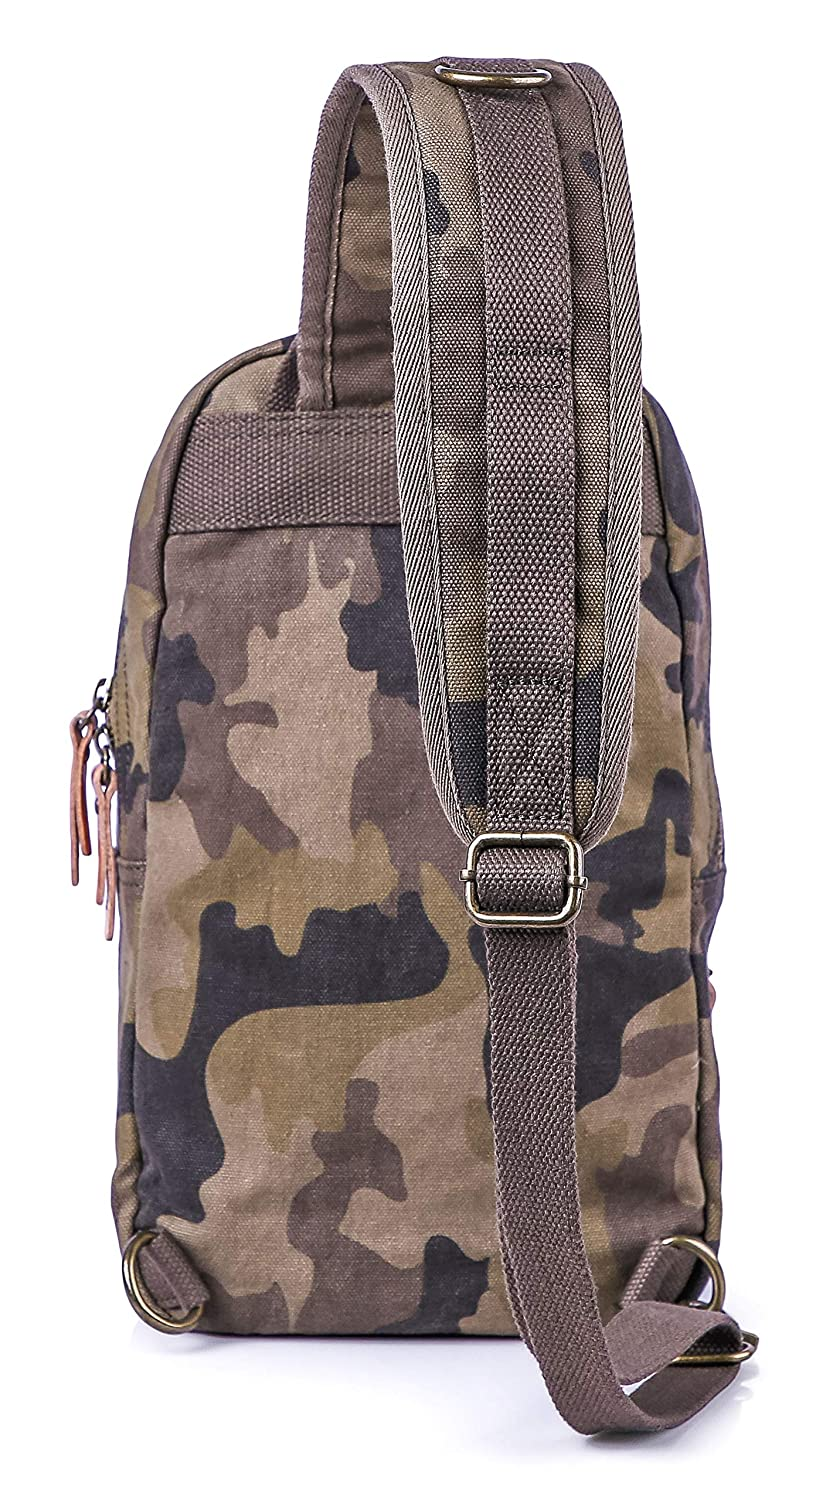 Gootium Camo Sling Bag – Canvas Crossbody Daypack